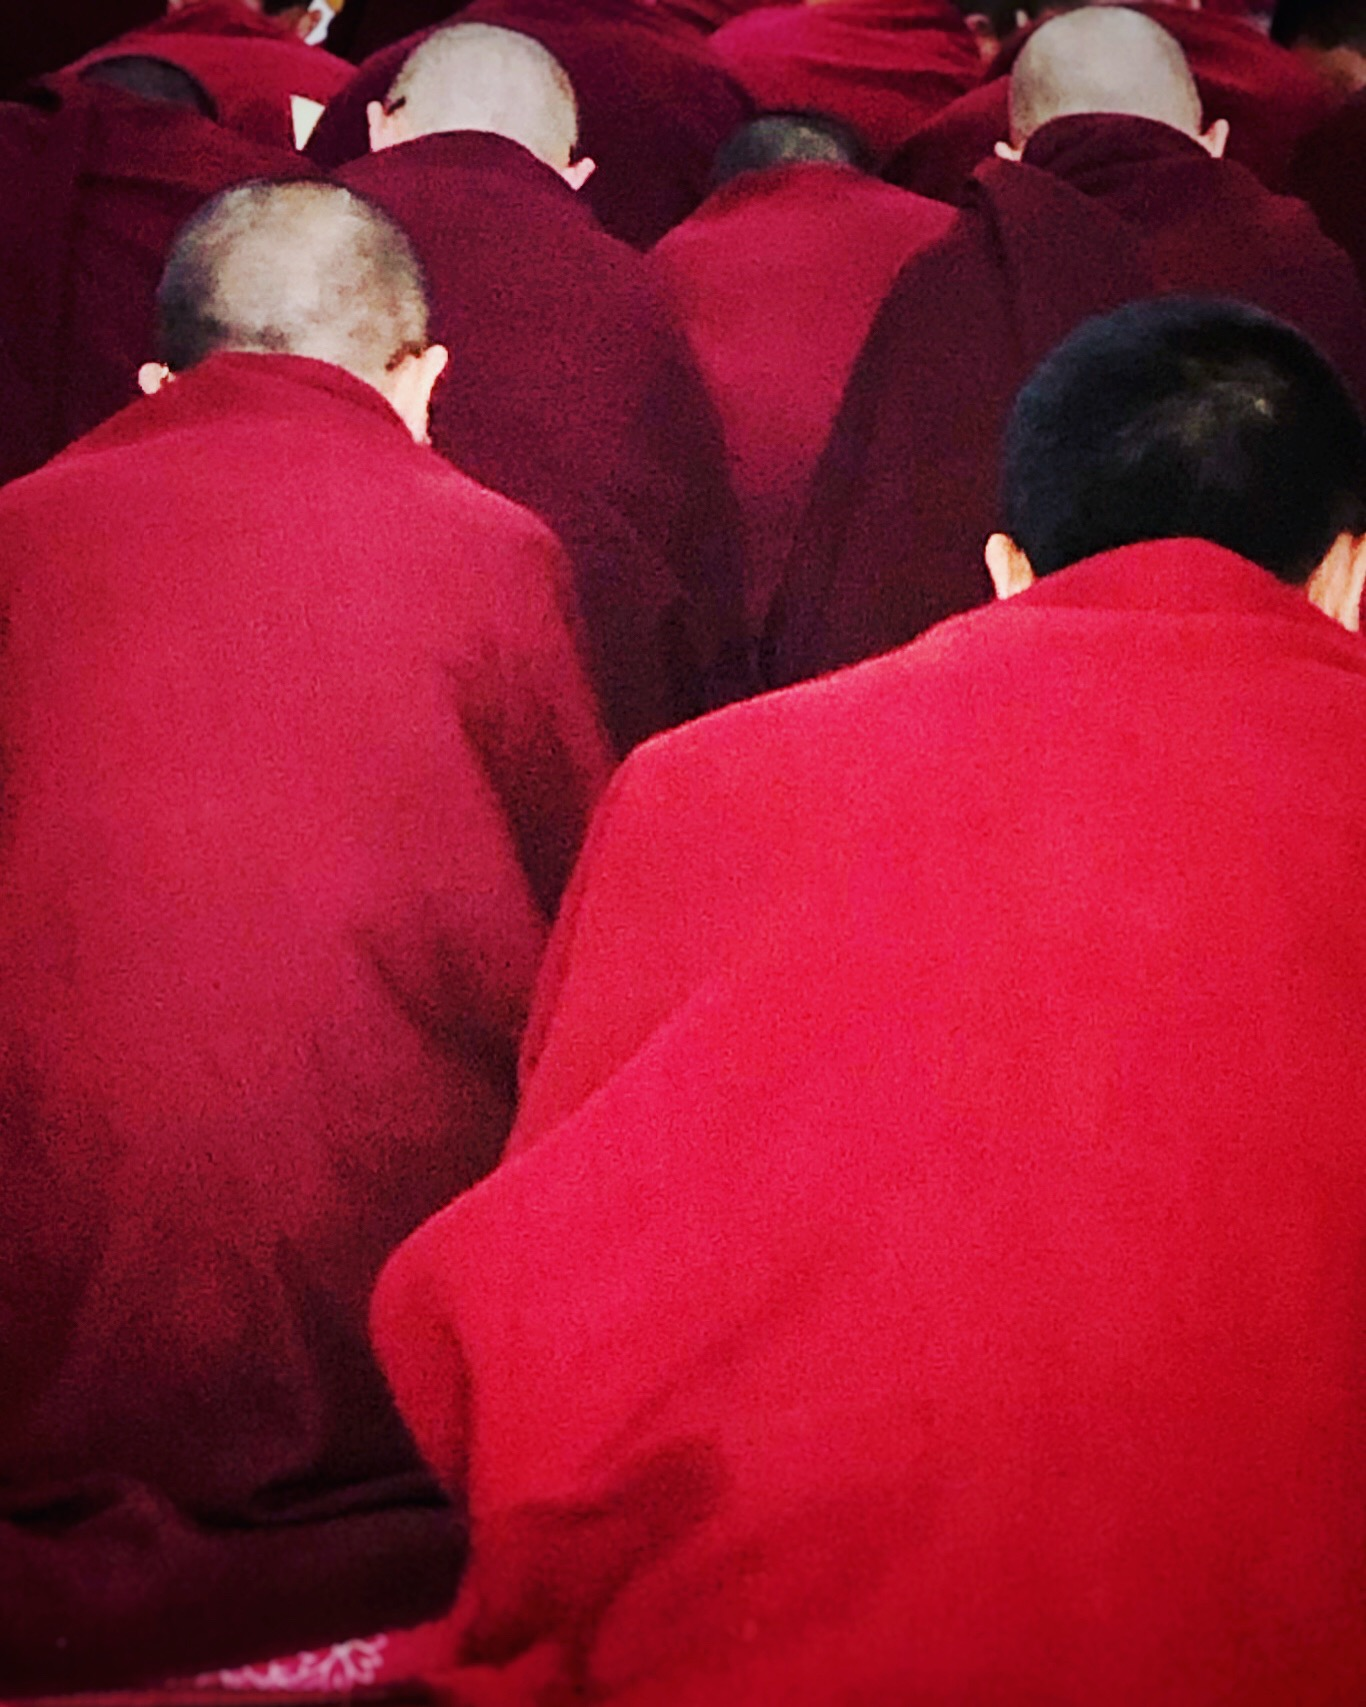 Tibetan Monks in Dalai Lama Monastry